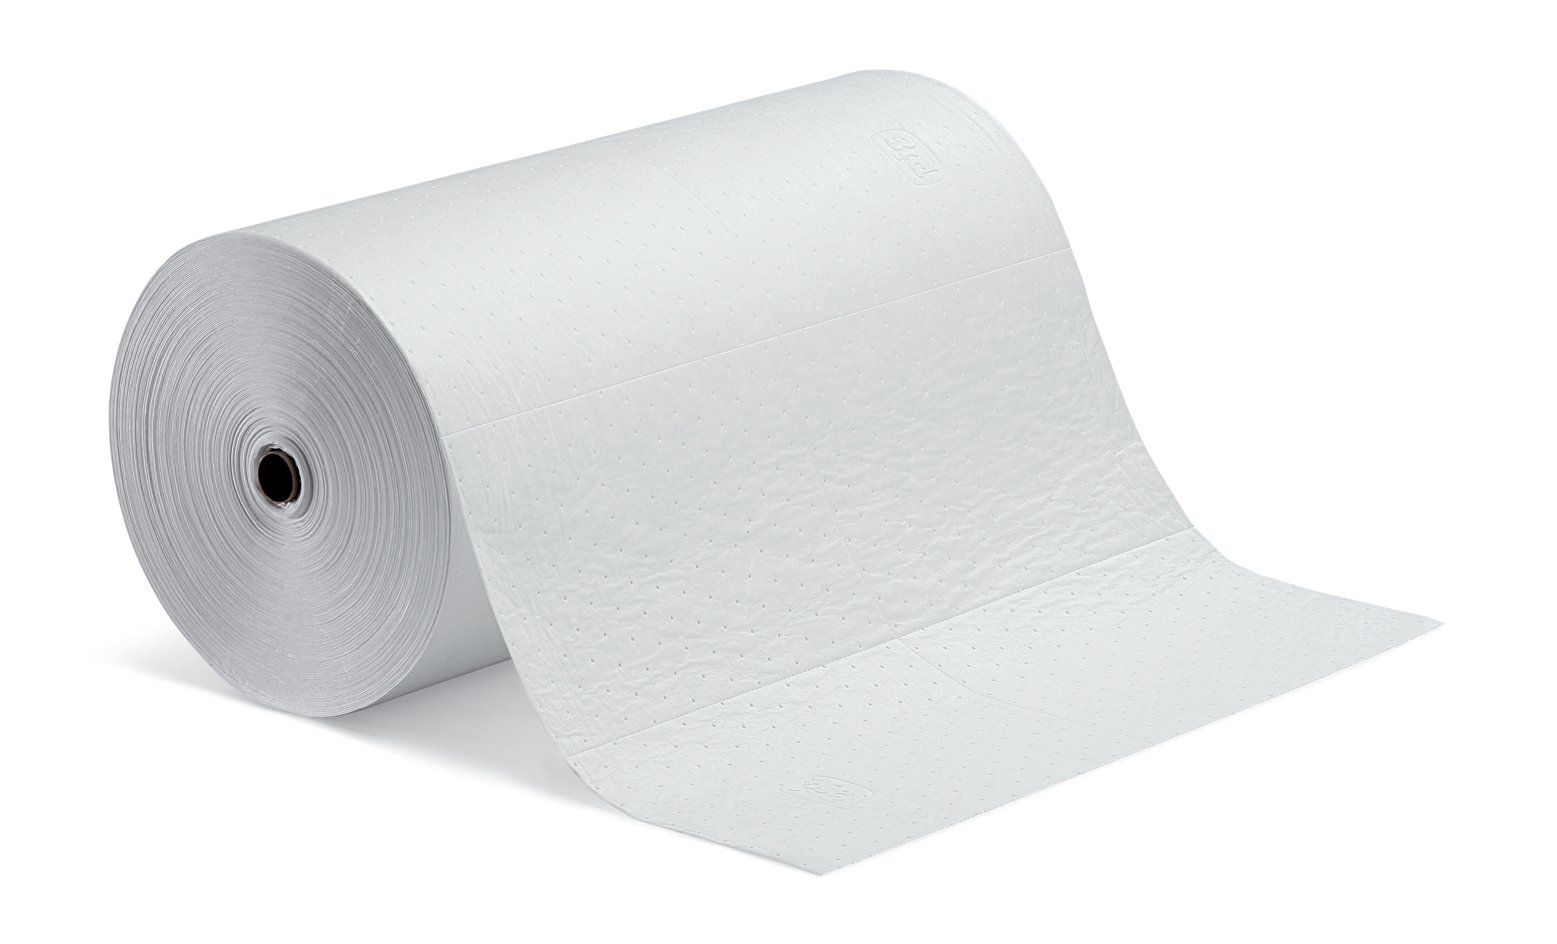 New Pig Oil-Only Absorbent Mat Roll, Absorbs Oil-Based Liquids, Repels Water, Heavyweight, 40-Gal Absorbency, 150' L x 30'' W, White, MAT401